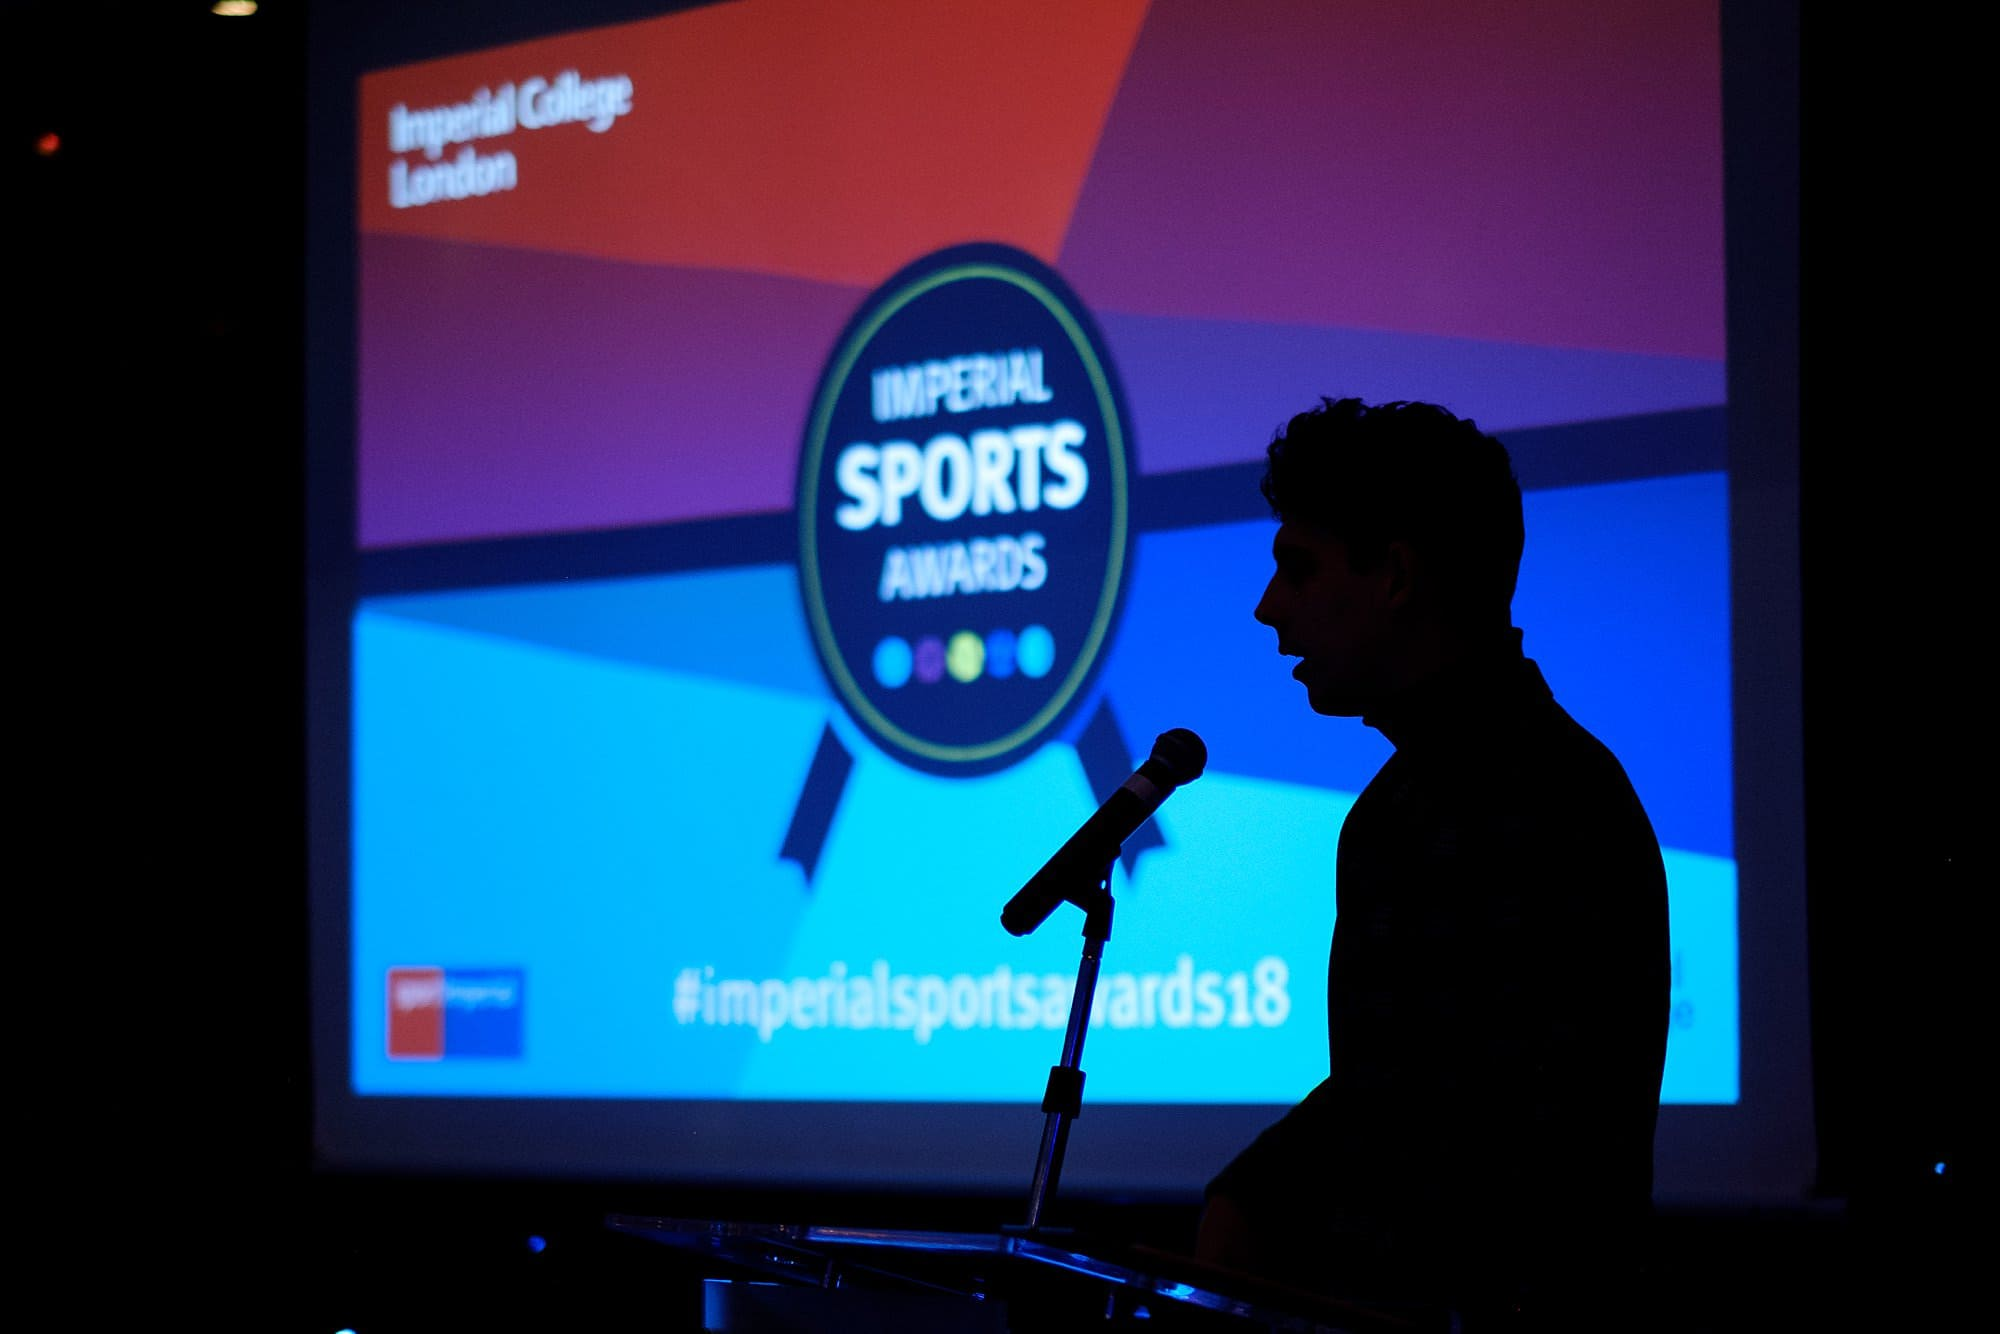 london event photographer ICL copthorne tara 014 - Corporate: Imperial College Sports Awards